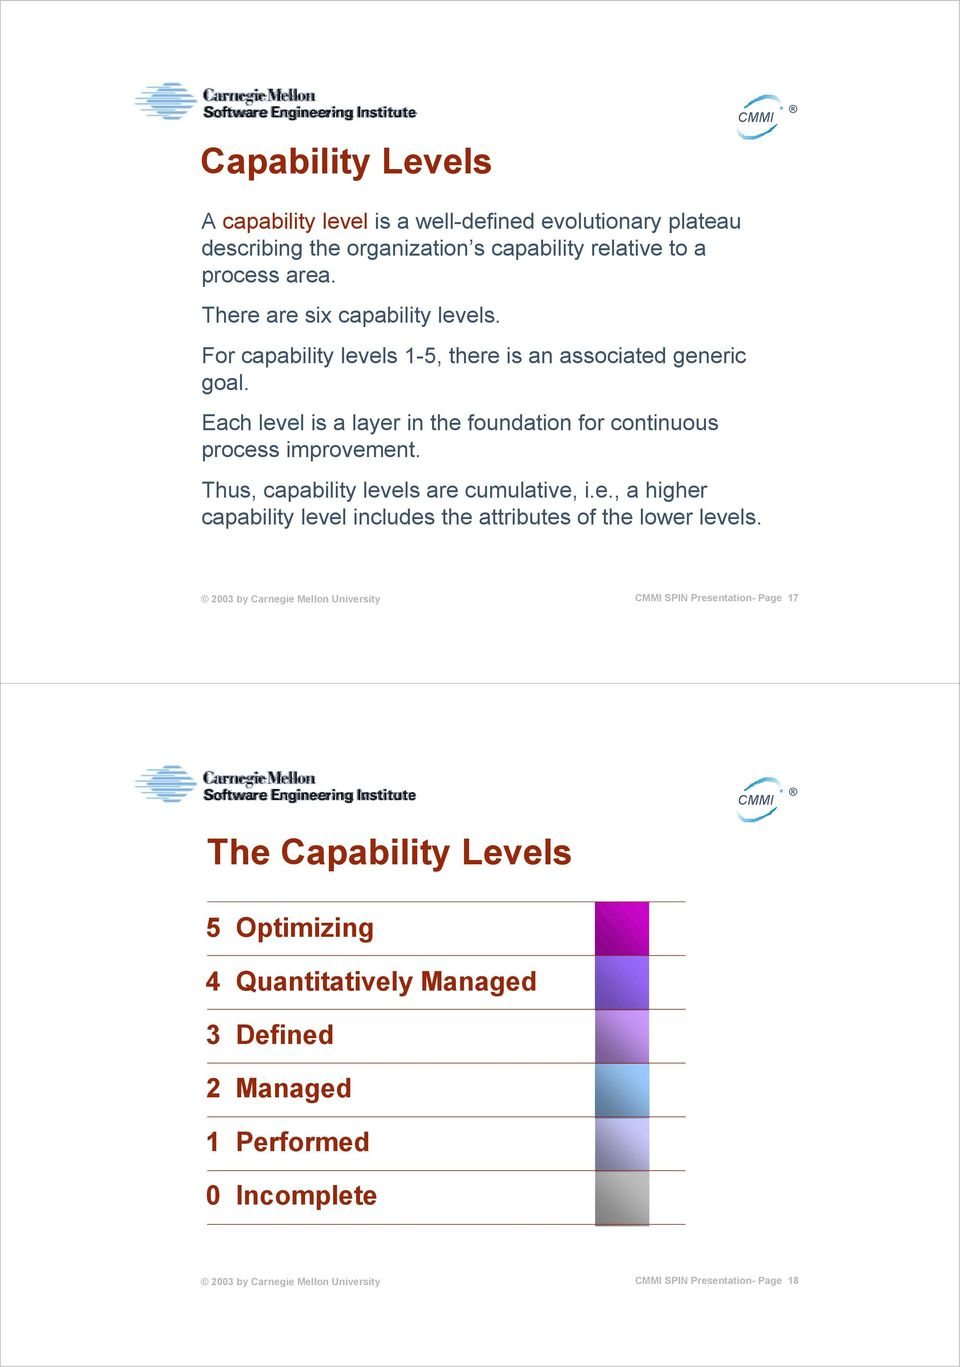 Each level is a layer in the foundation for continuous process improvement. Thus, capability levels are cumulative, i.e., a higher capability level includes the attributes of the lower levels.